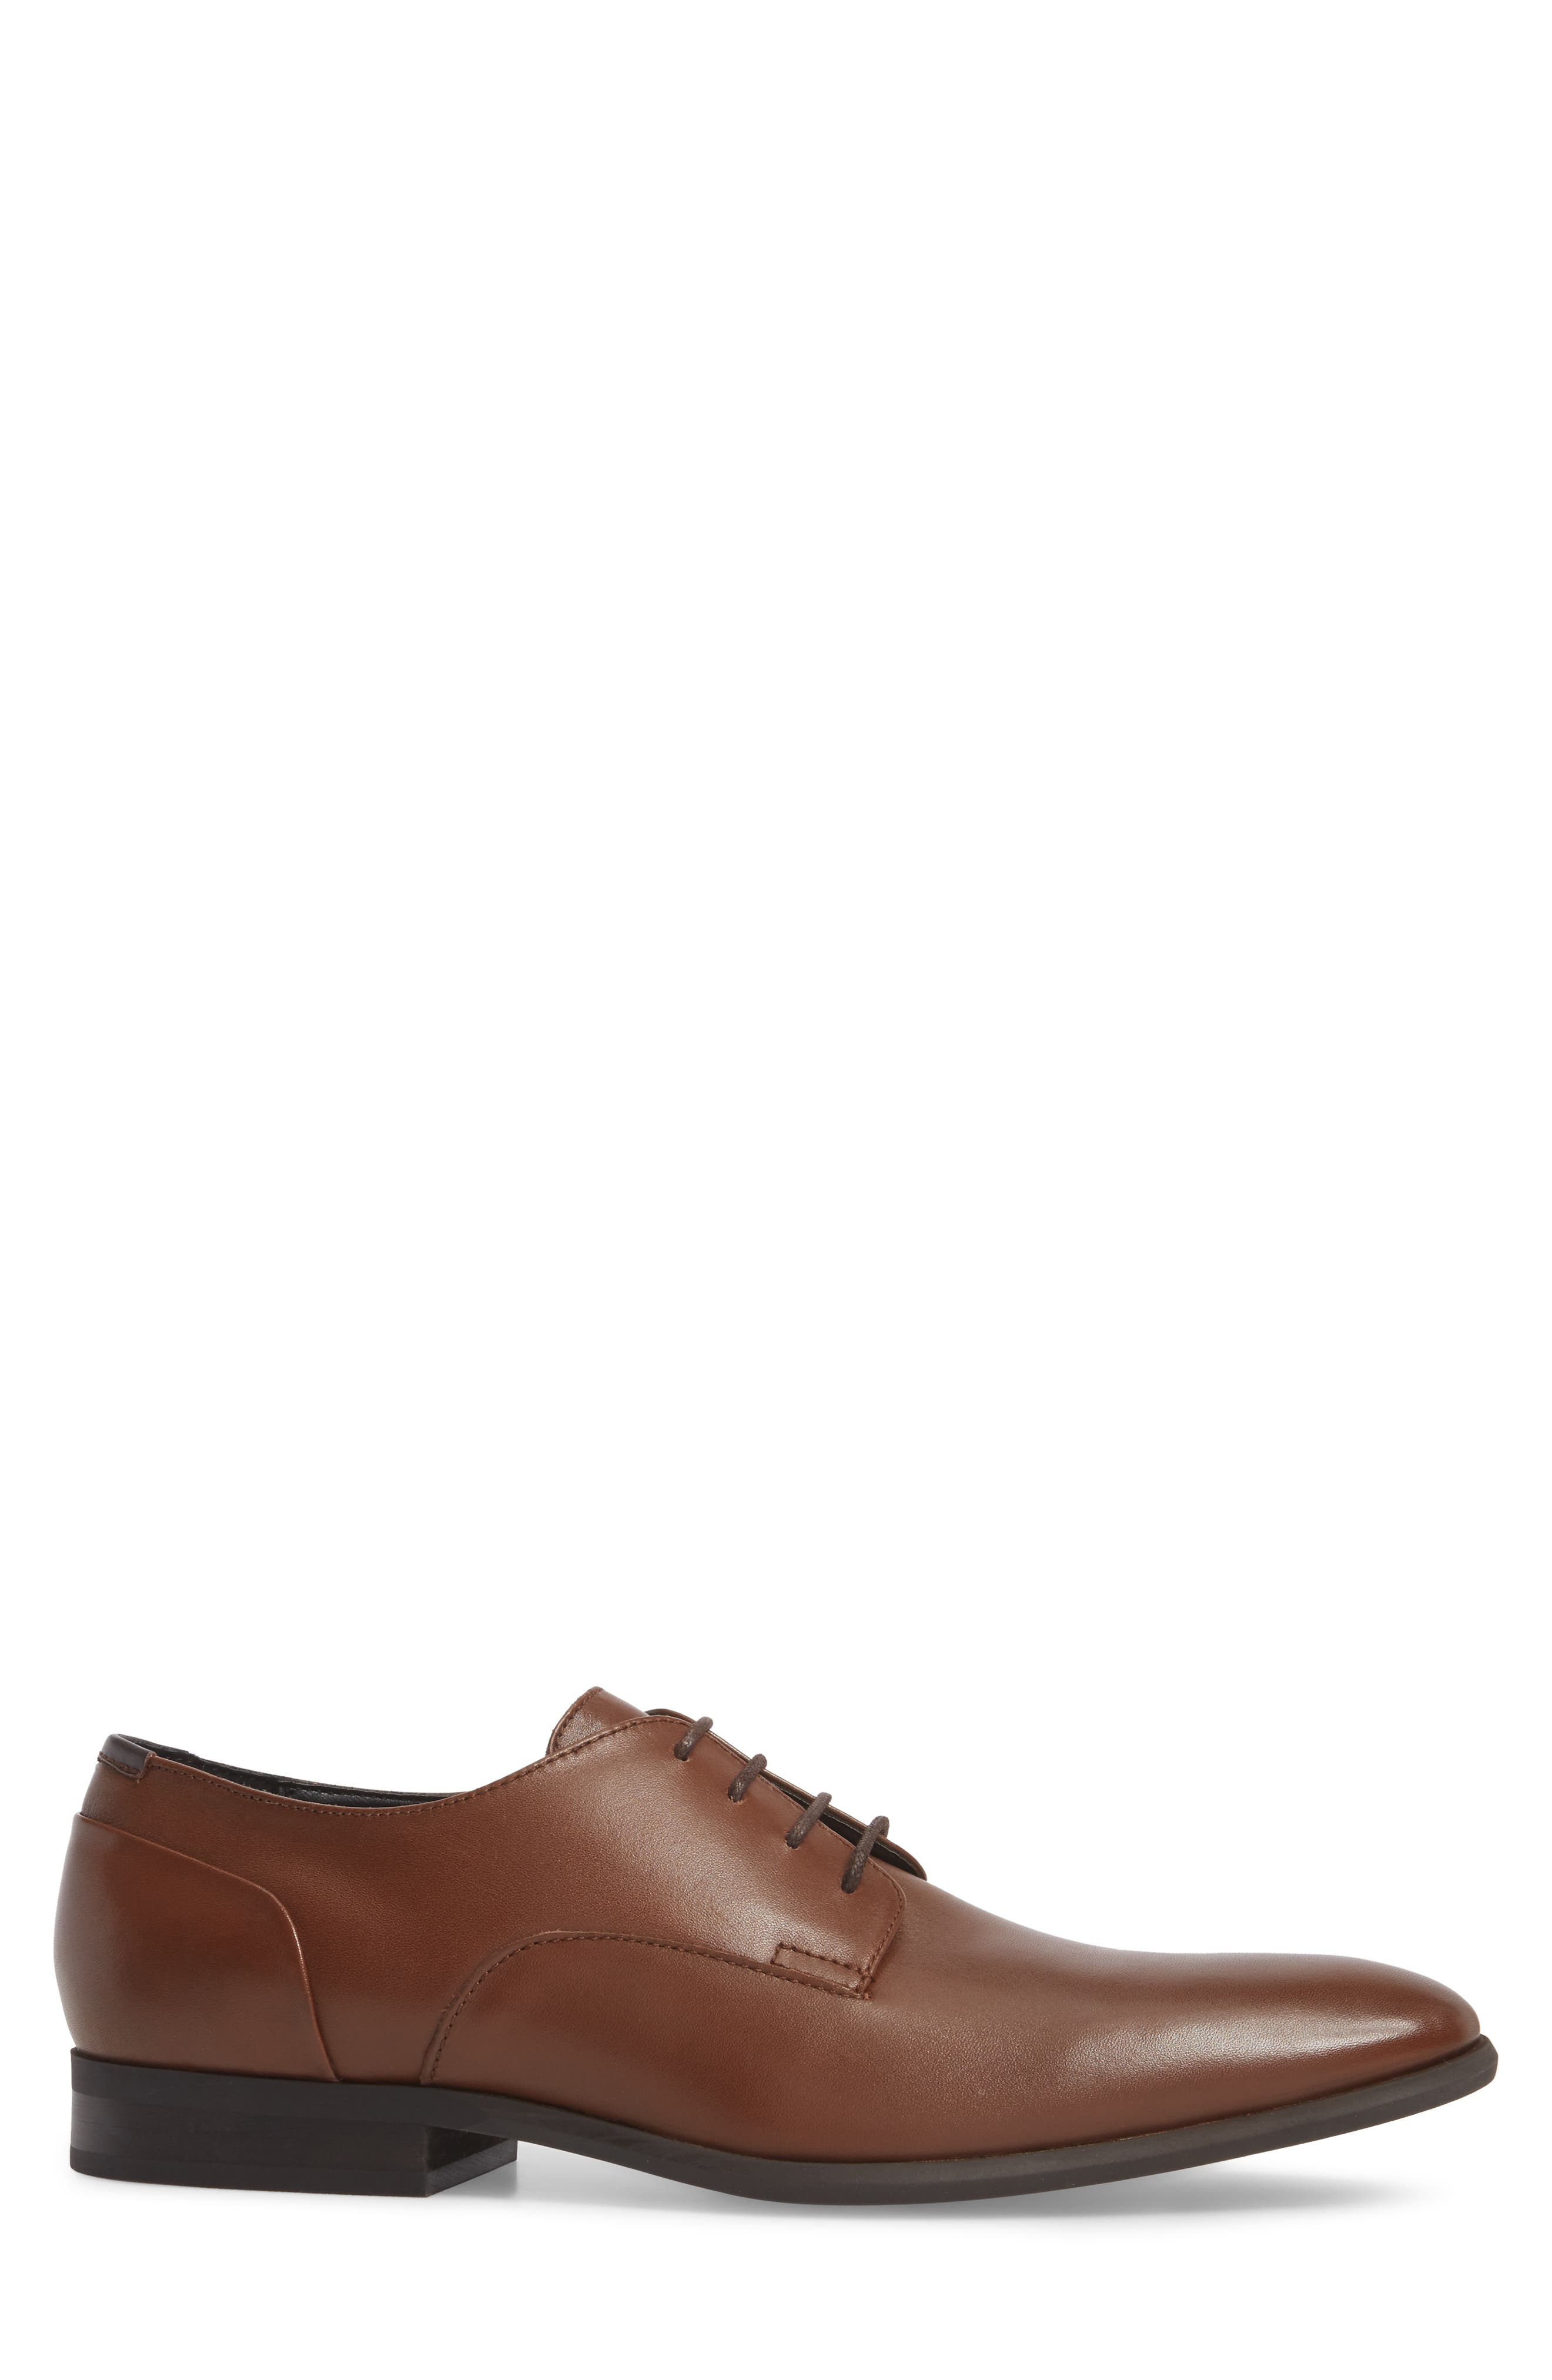 Lucca Plain Toe Derby,                             Alternate thumbnail 3, color,                             Tan Leather